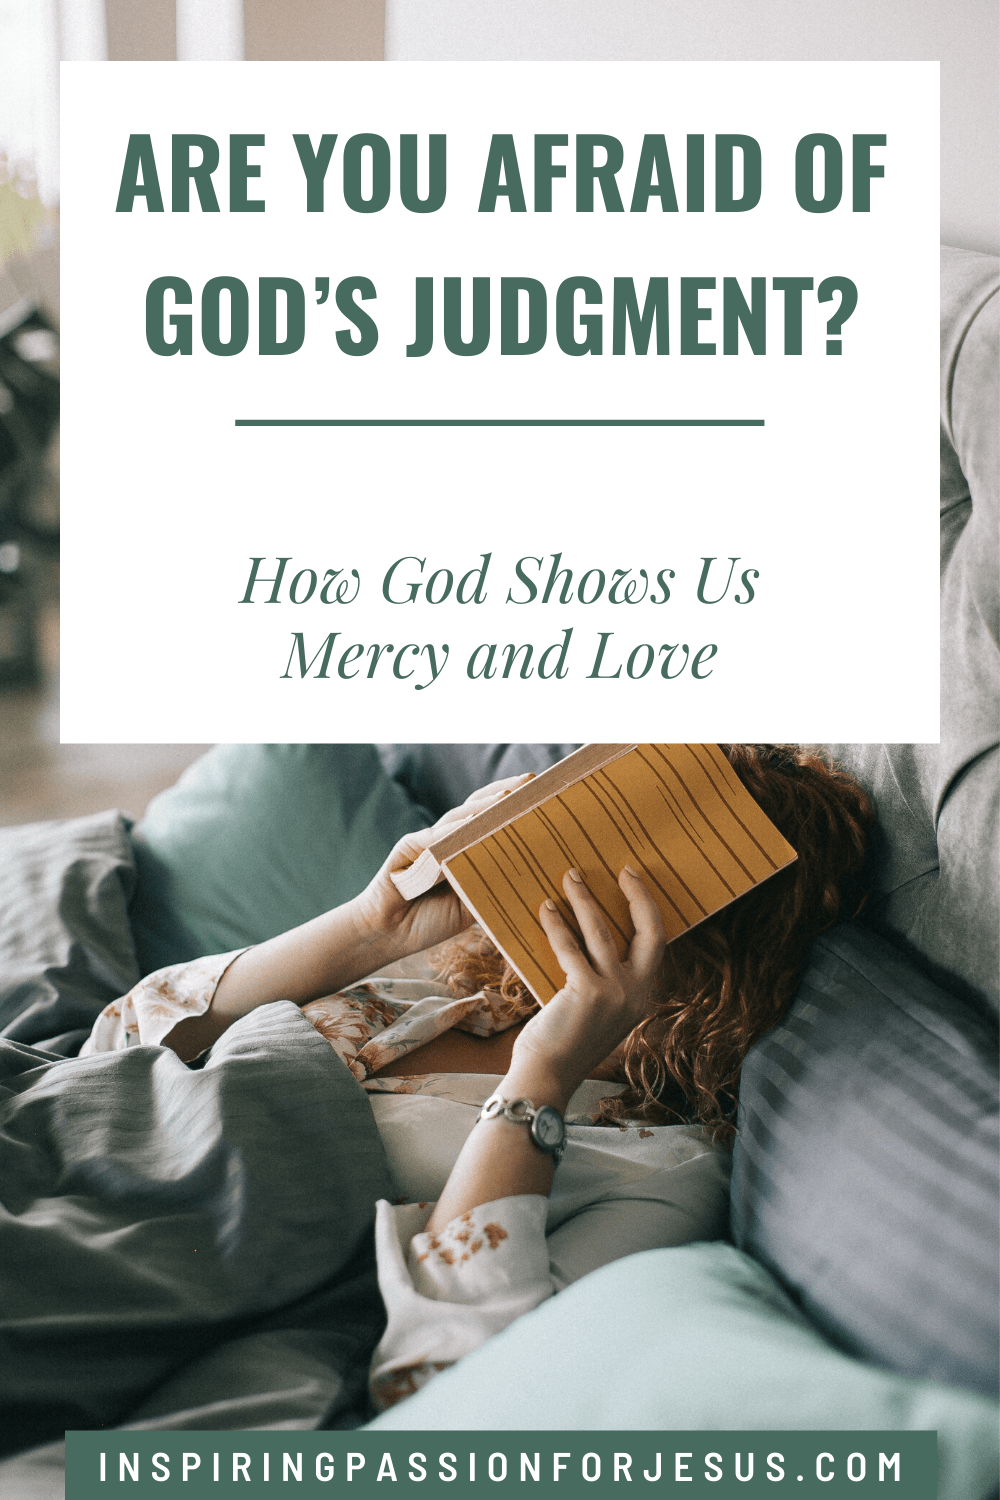 Are You Afraid of God's Judgment?